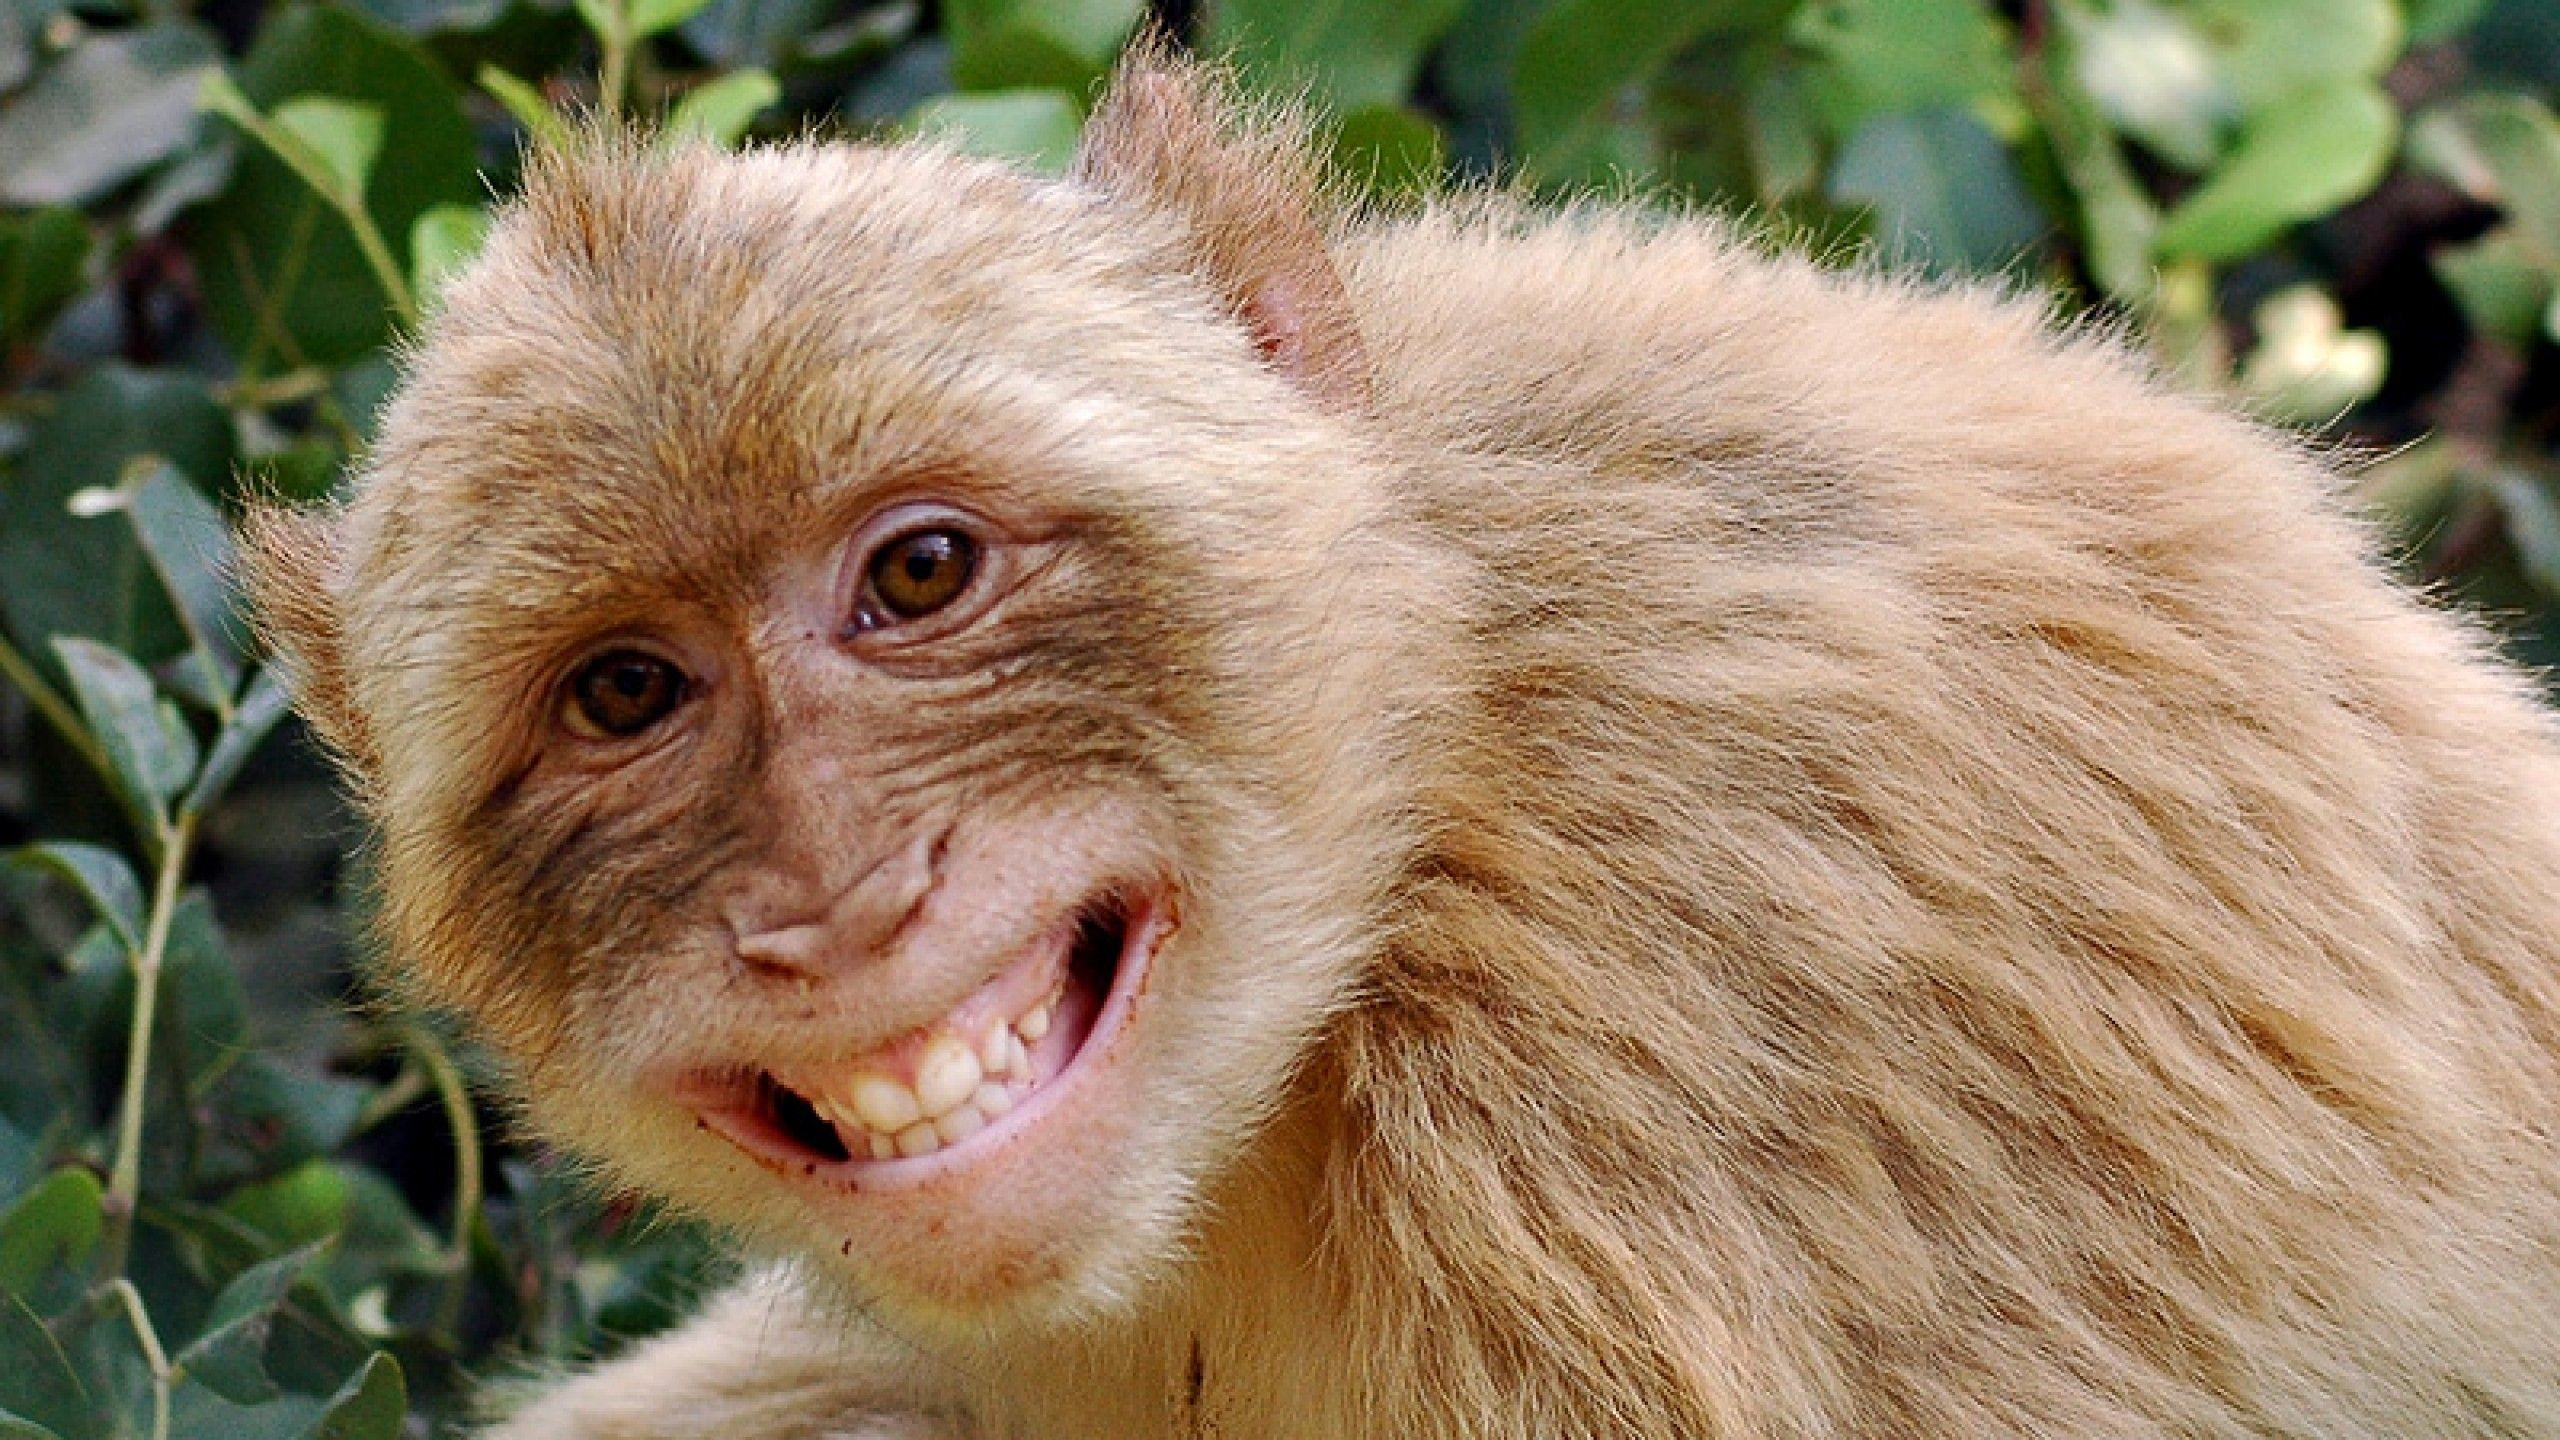 2560x1440 Funny Monkey Pictures Wallpapers Wallpaper | HD Wallpapers | Pinterest |  Funny monkeys and Wallpaper